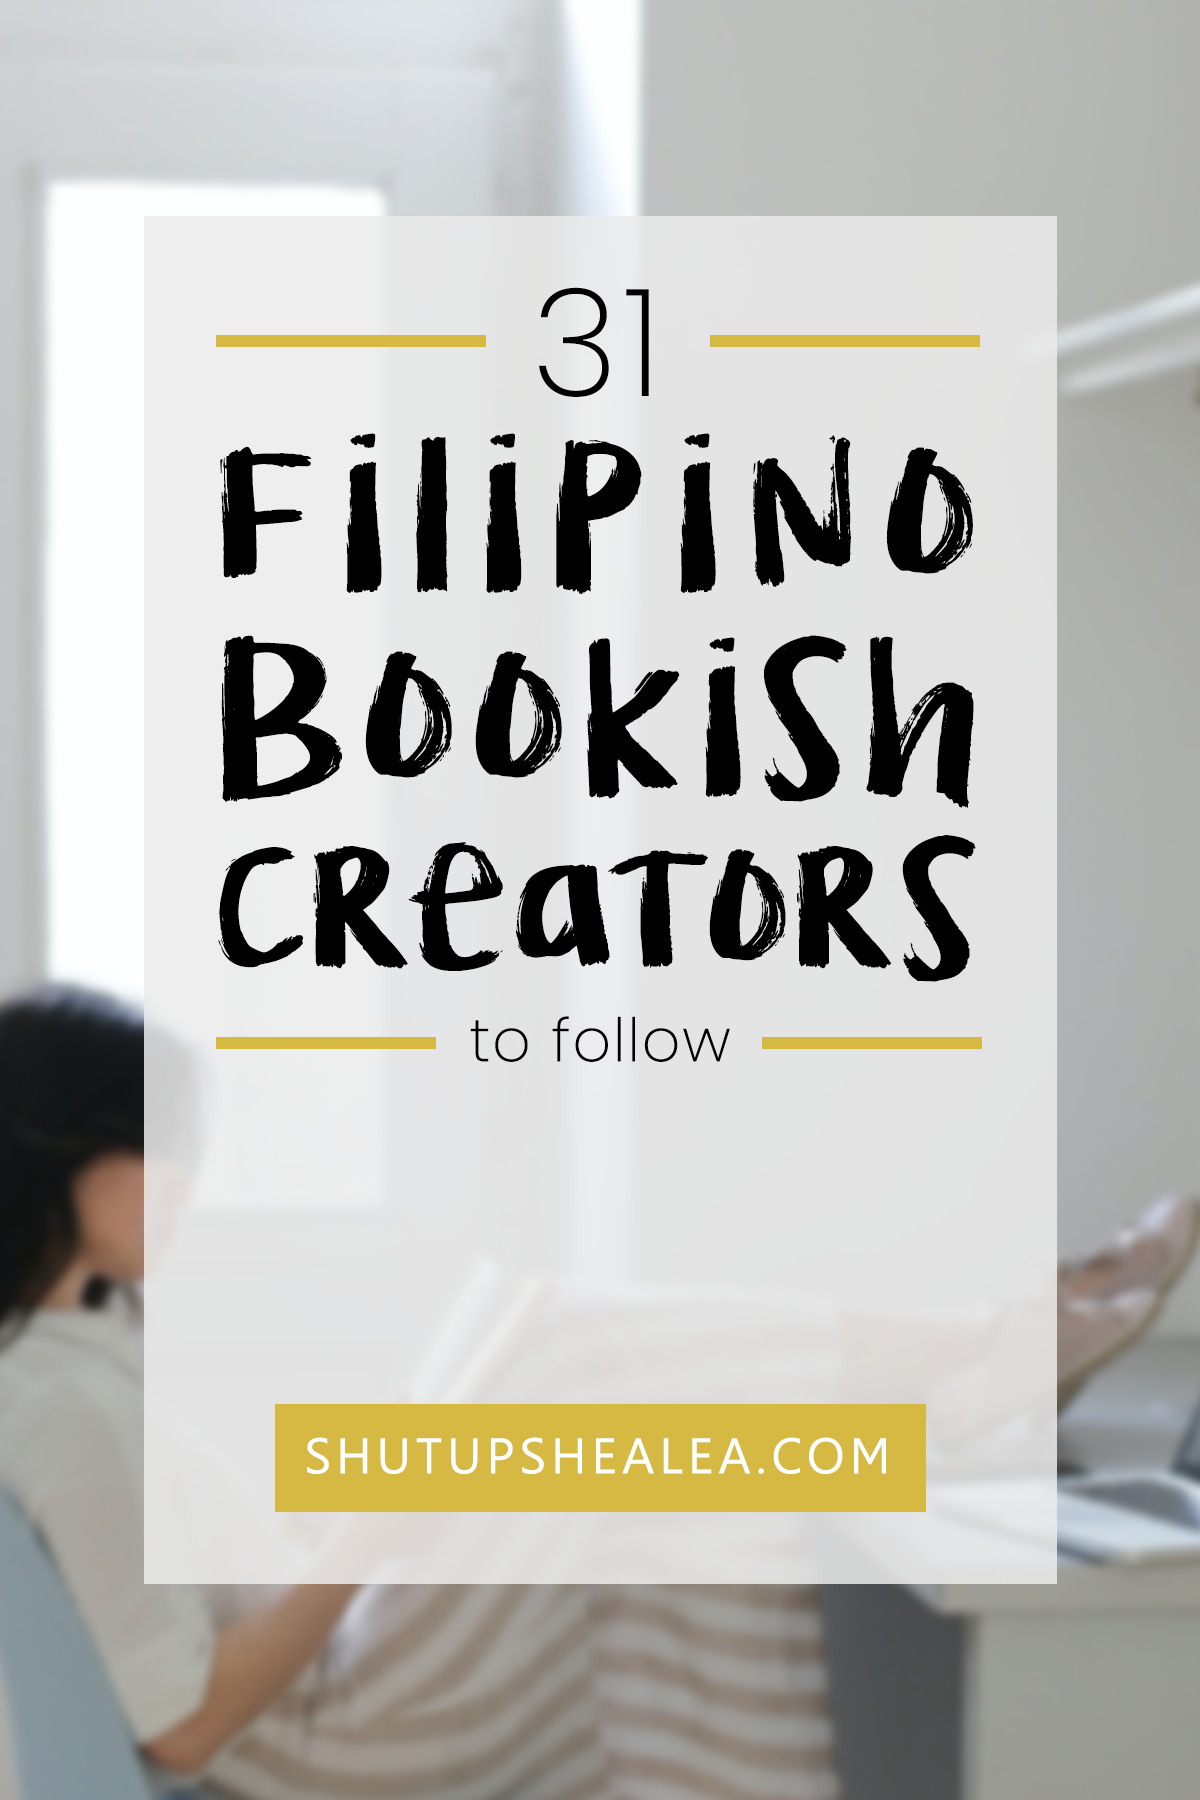 Fill your feed with diverse content from Filipino book bloggers, bookstagrammers, booktubers, and other bookish creators! Here are 31 personally curated recommendations to get you started. #filipino #philippines #supportlocal